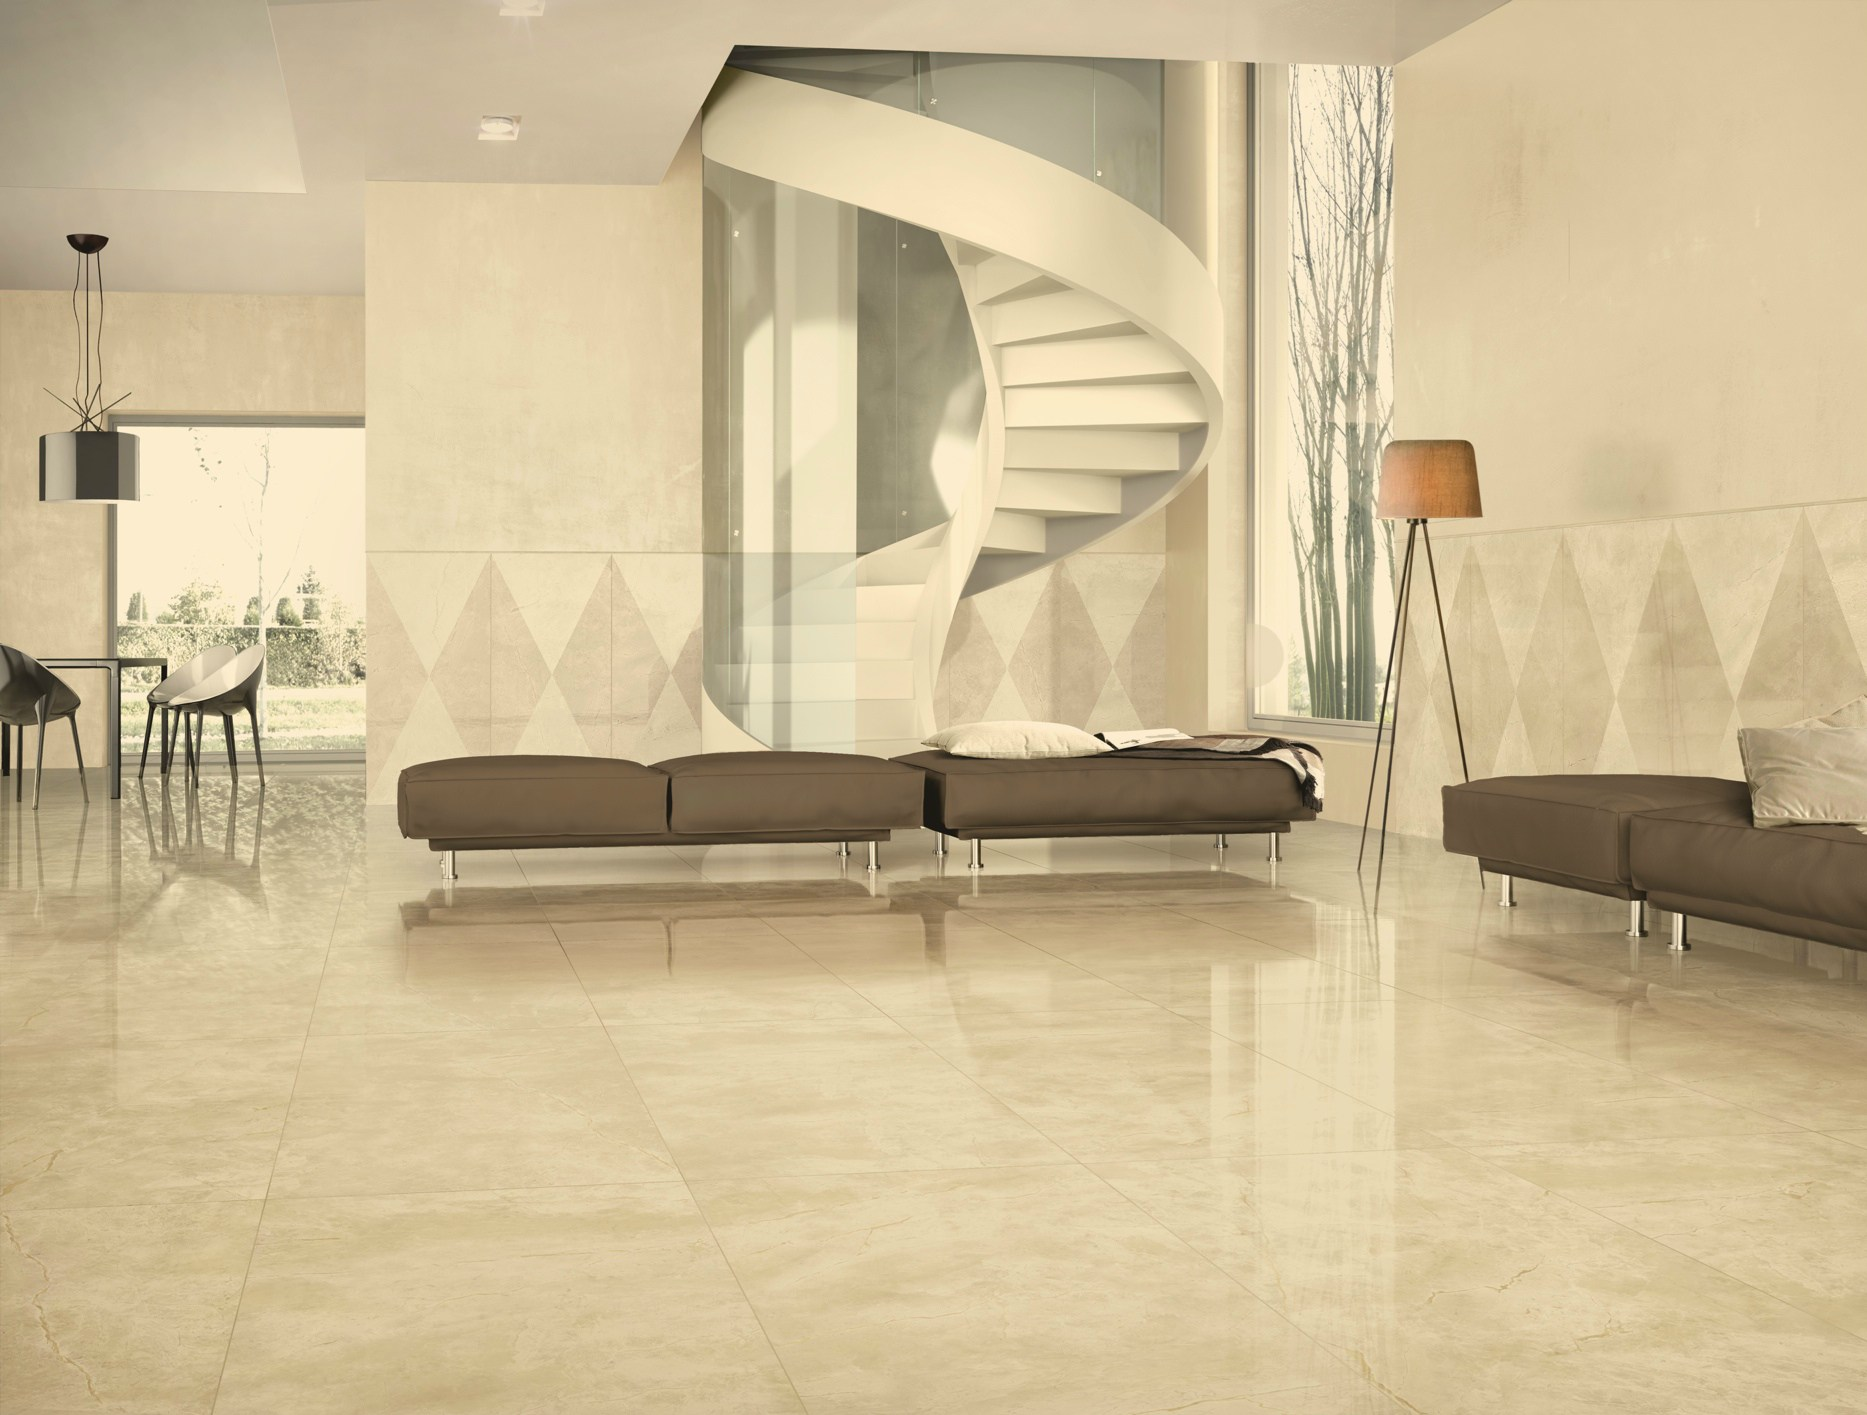 Porcelain stoneware wall floor tiles with marble effect for Carrelage casalgrande padana